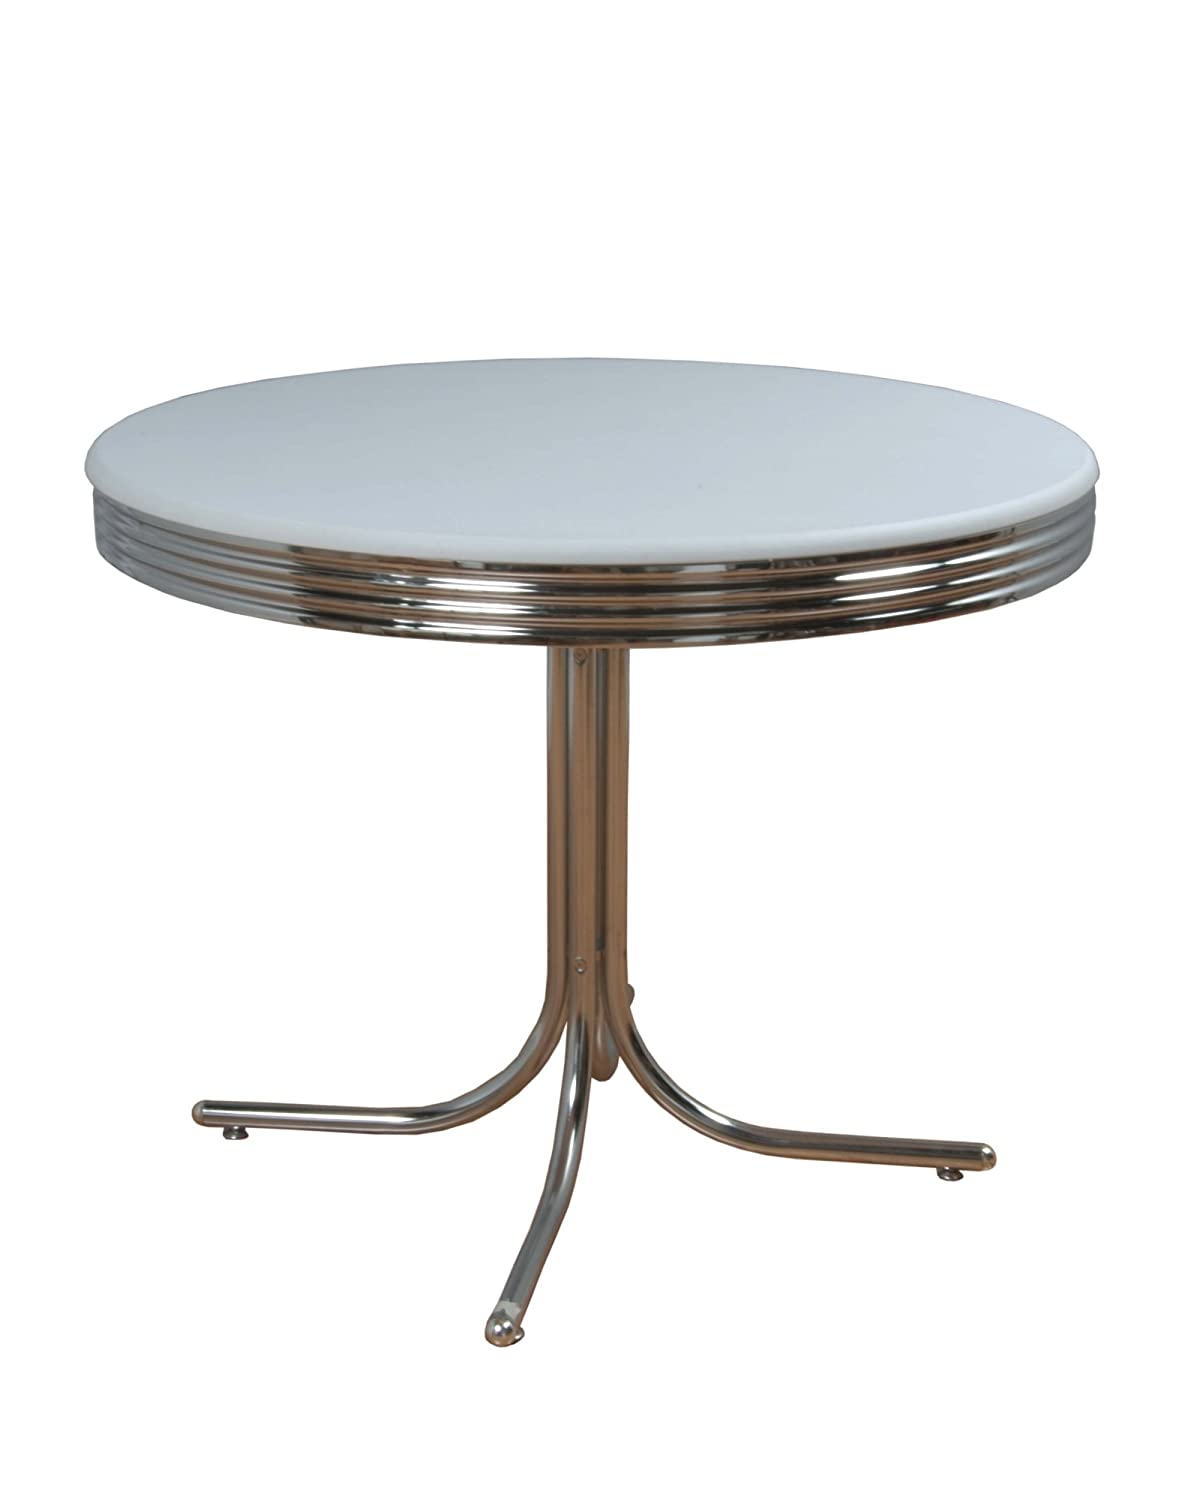 amazon com target marketing systems round retro dining table amazon com target marketing systems round retro dining table with chrome accents white tables